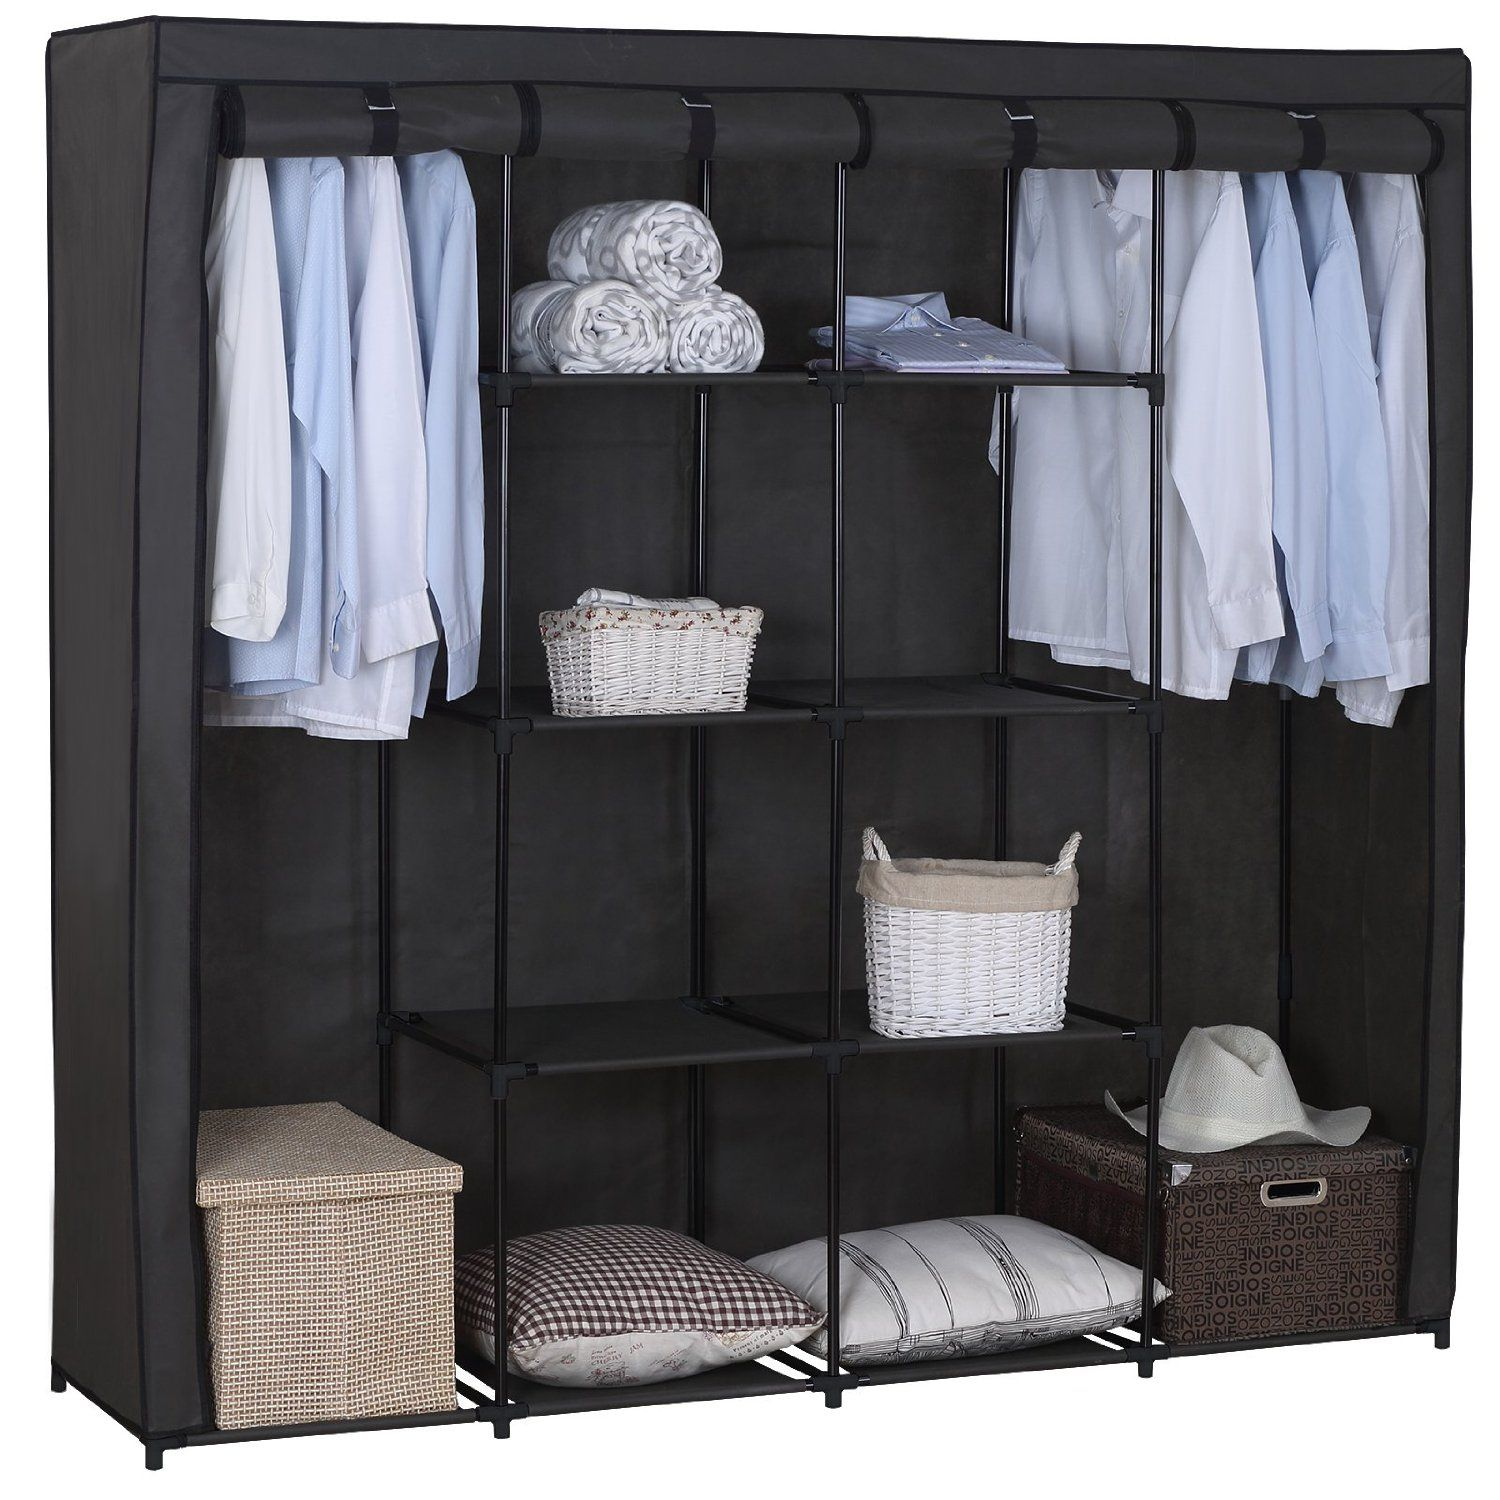 ss5024 woltu stoff textil kleiderschrank stoffkleiderschrank campingschrank garderobenschrank. Black Bedroom Furniture Sets. Home Design Ideas